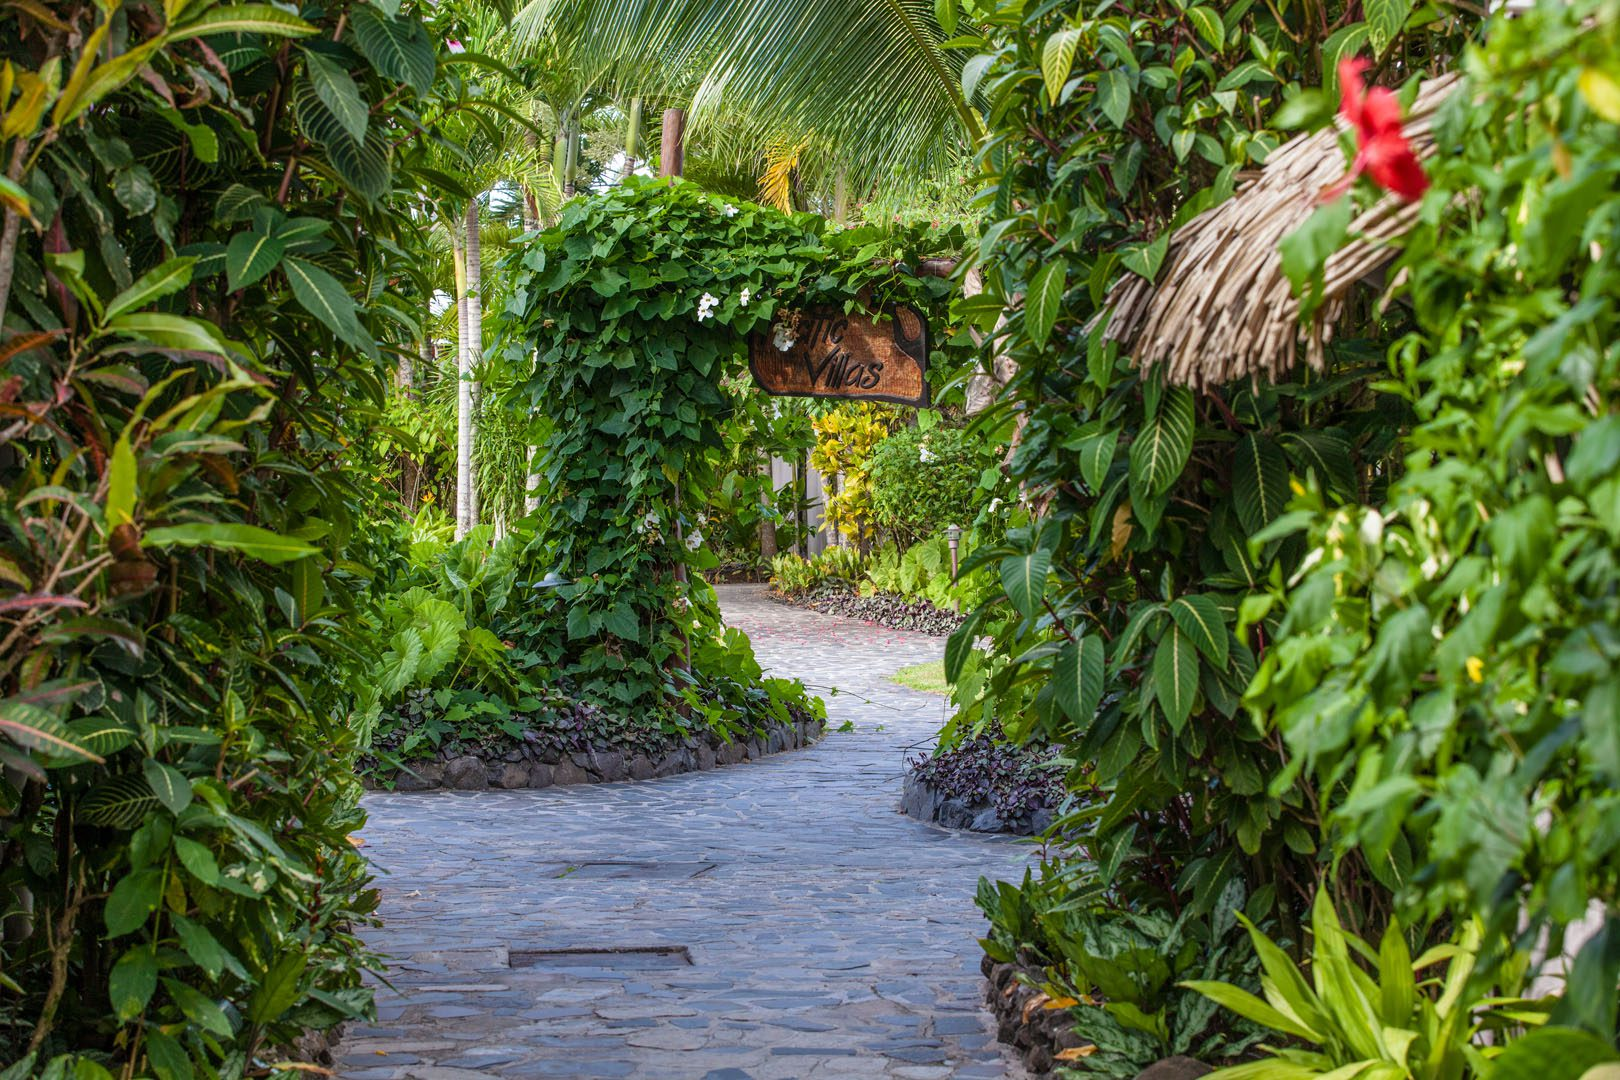 An image featuring a well designed pathway along the Pacific garden